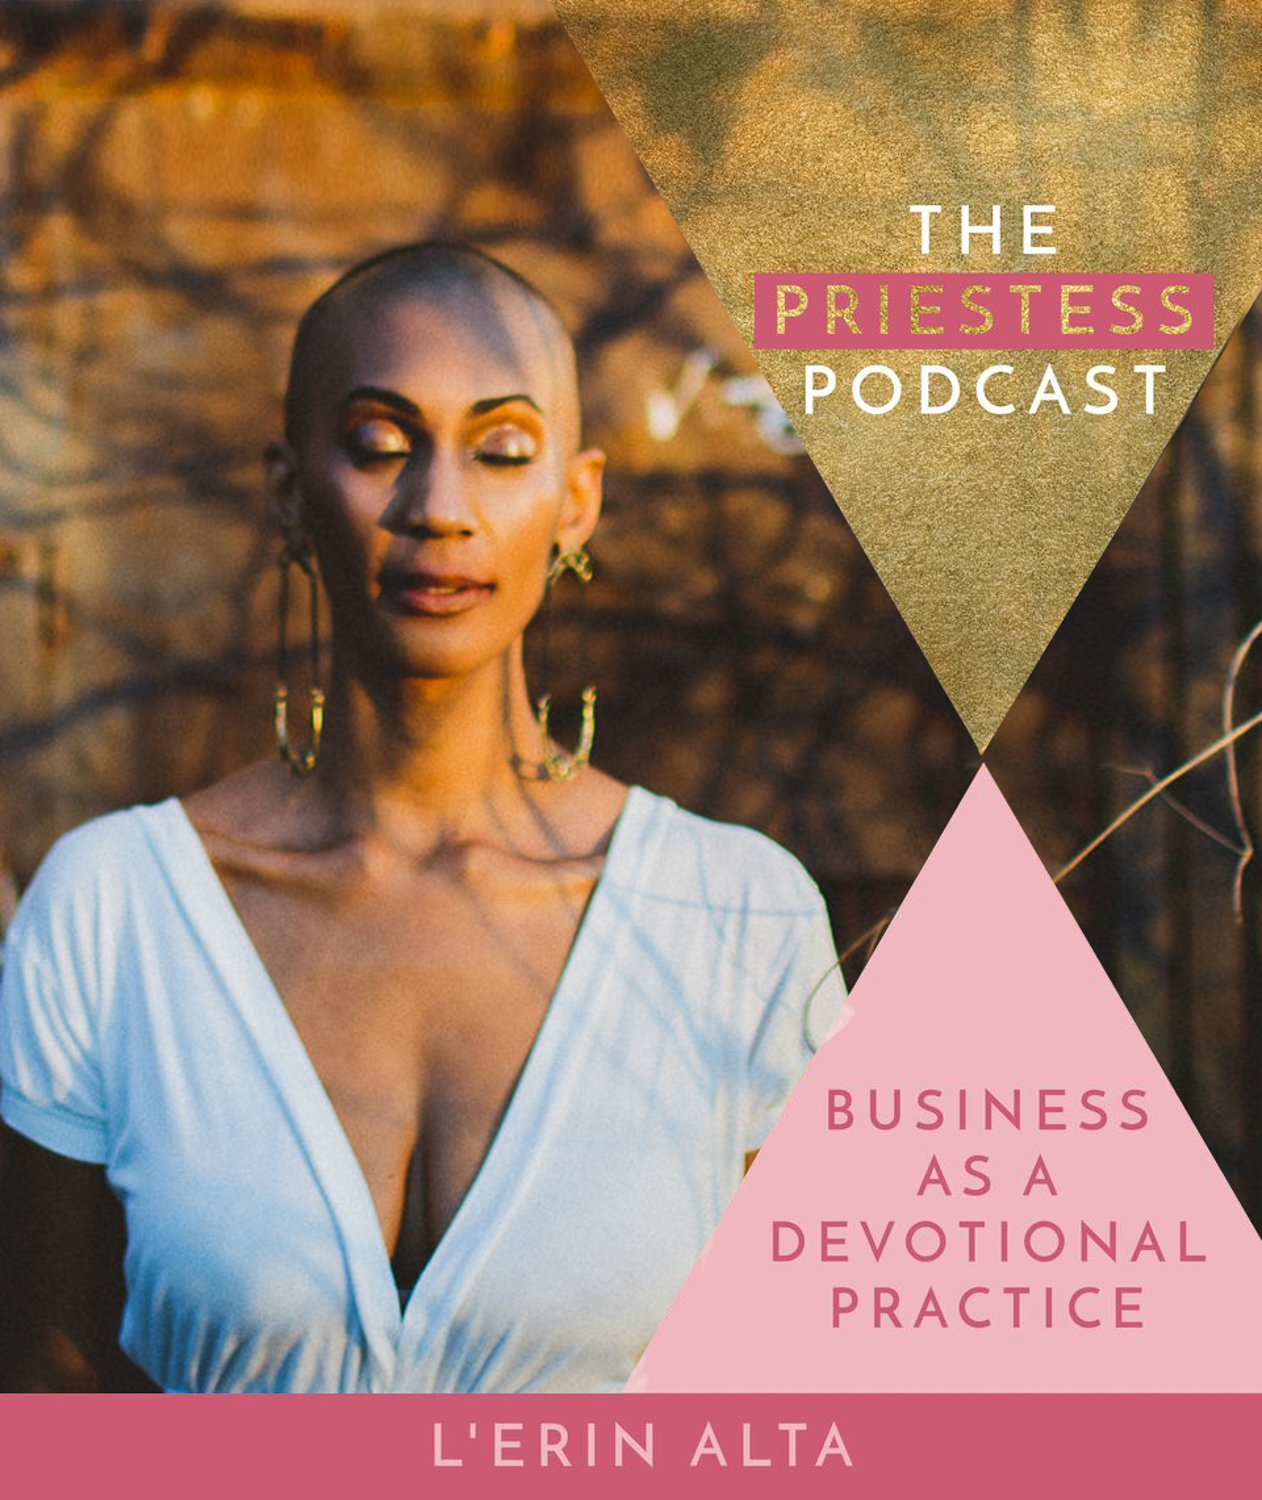 L'Erin Alta on Business as a Devotional Practice